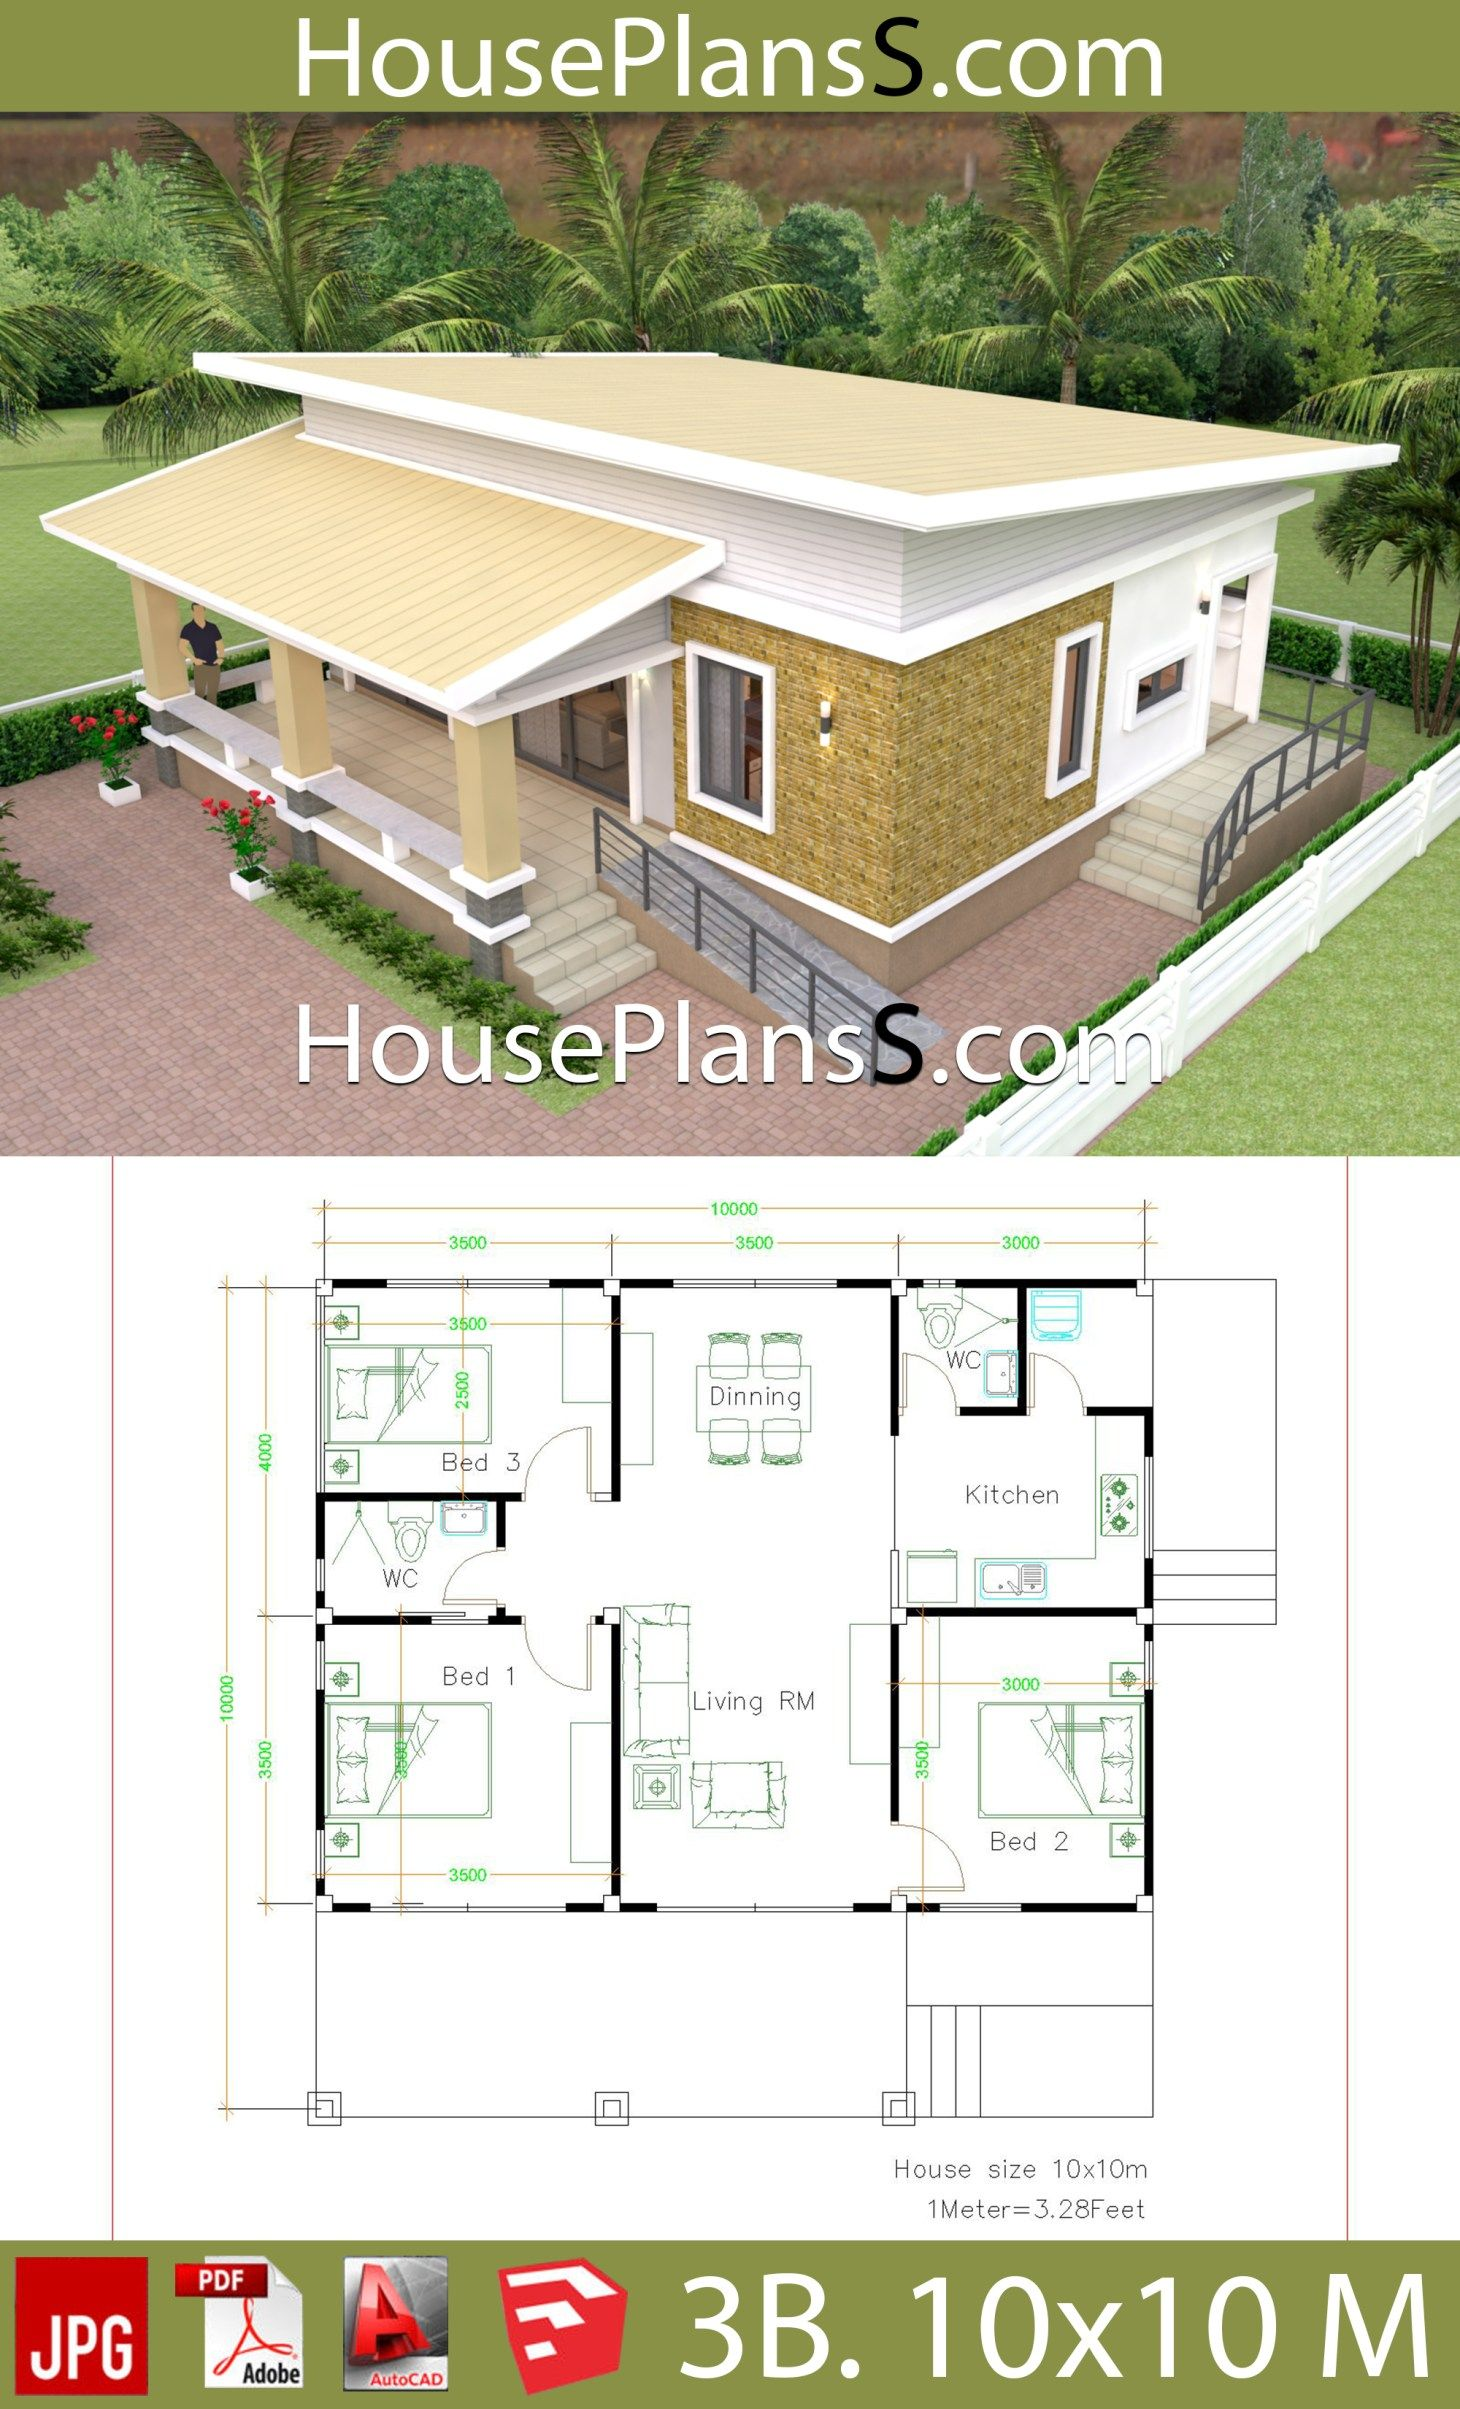 Framing A 10x10 Room: House Design Plans 10x10 With 3 Bedrooms Full Interior ใน